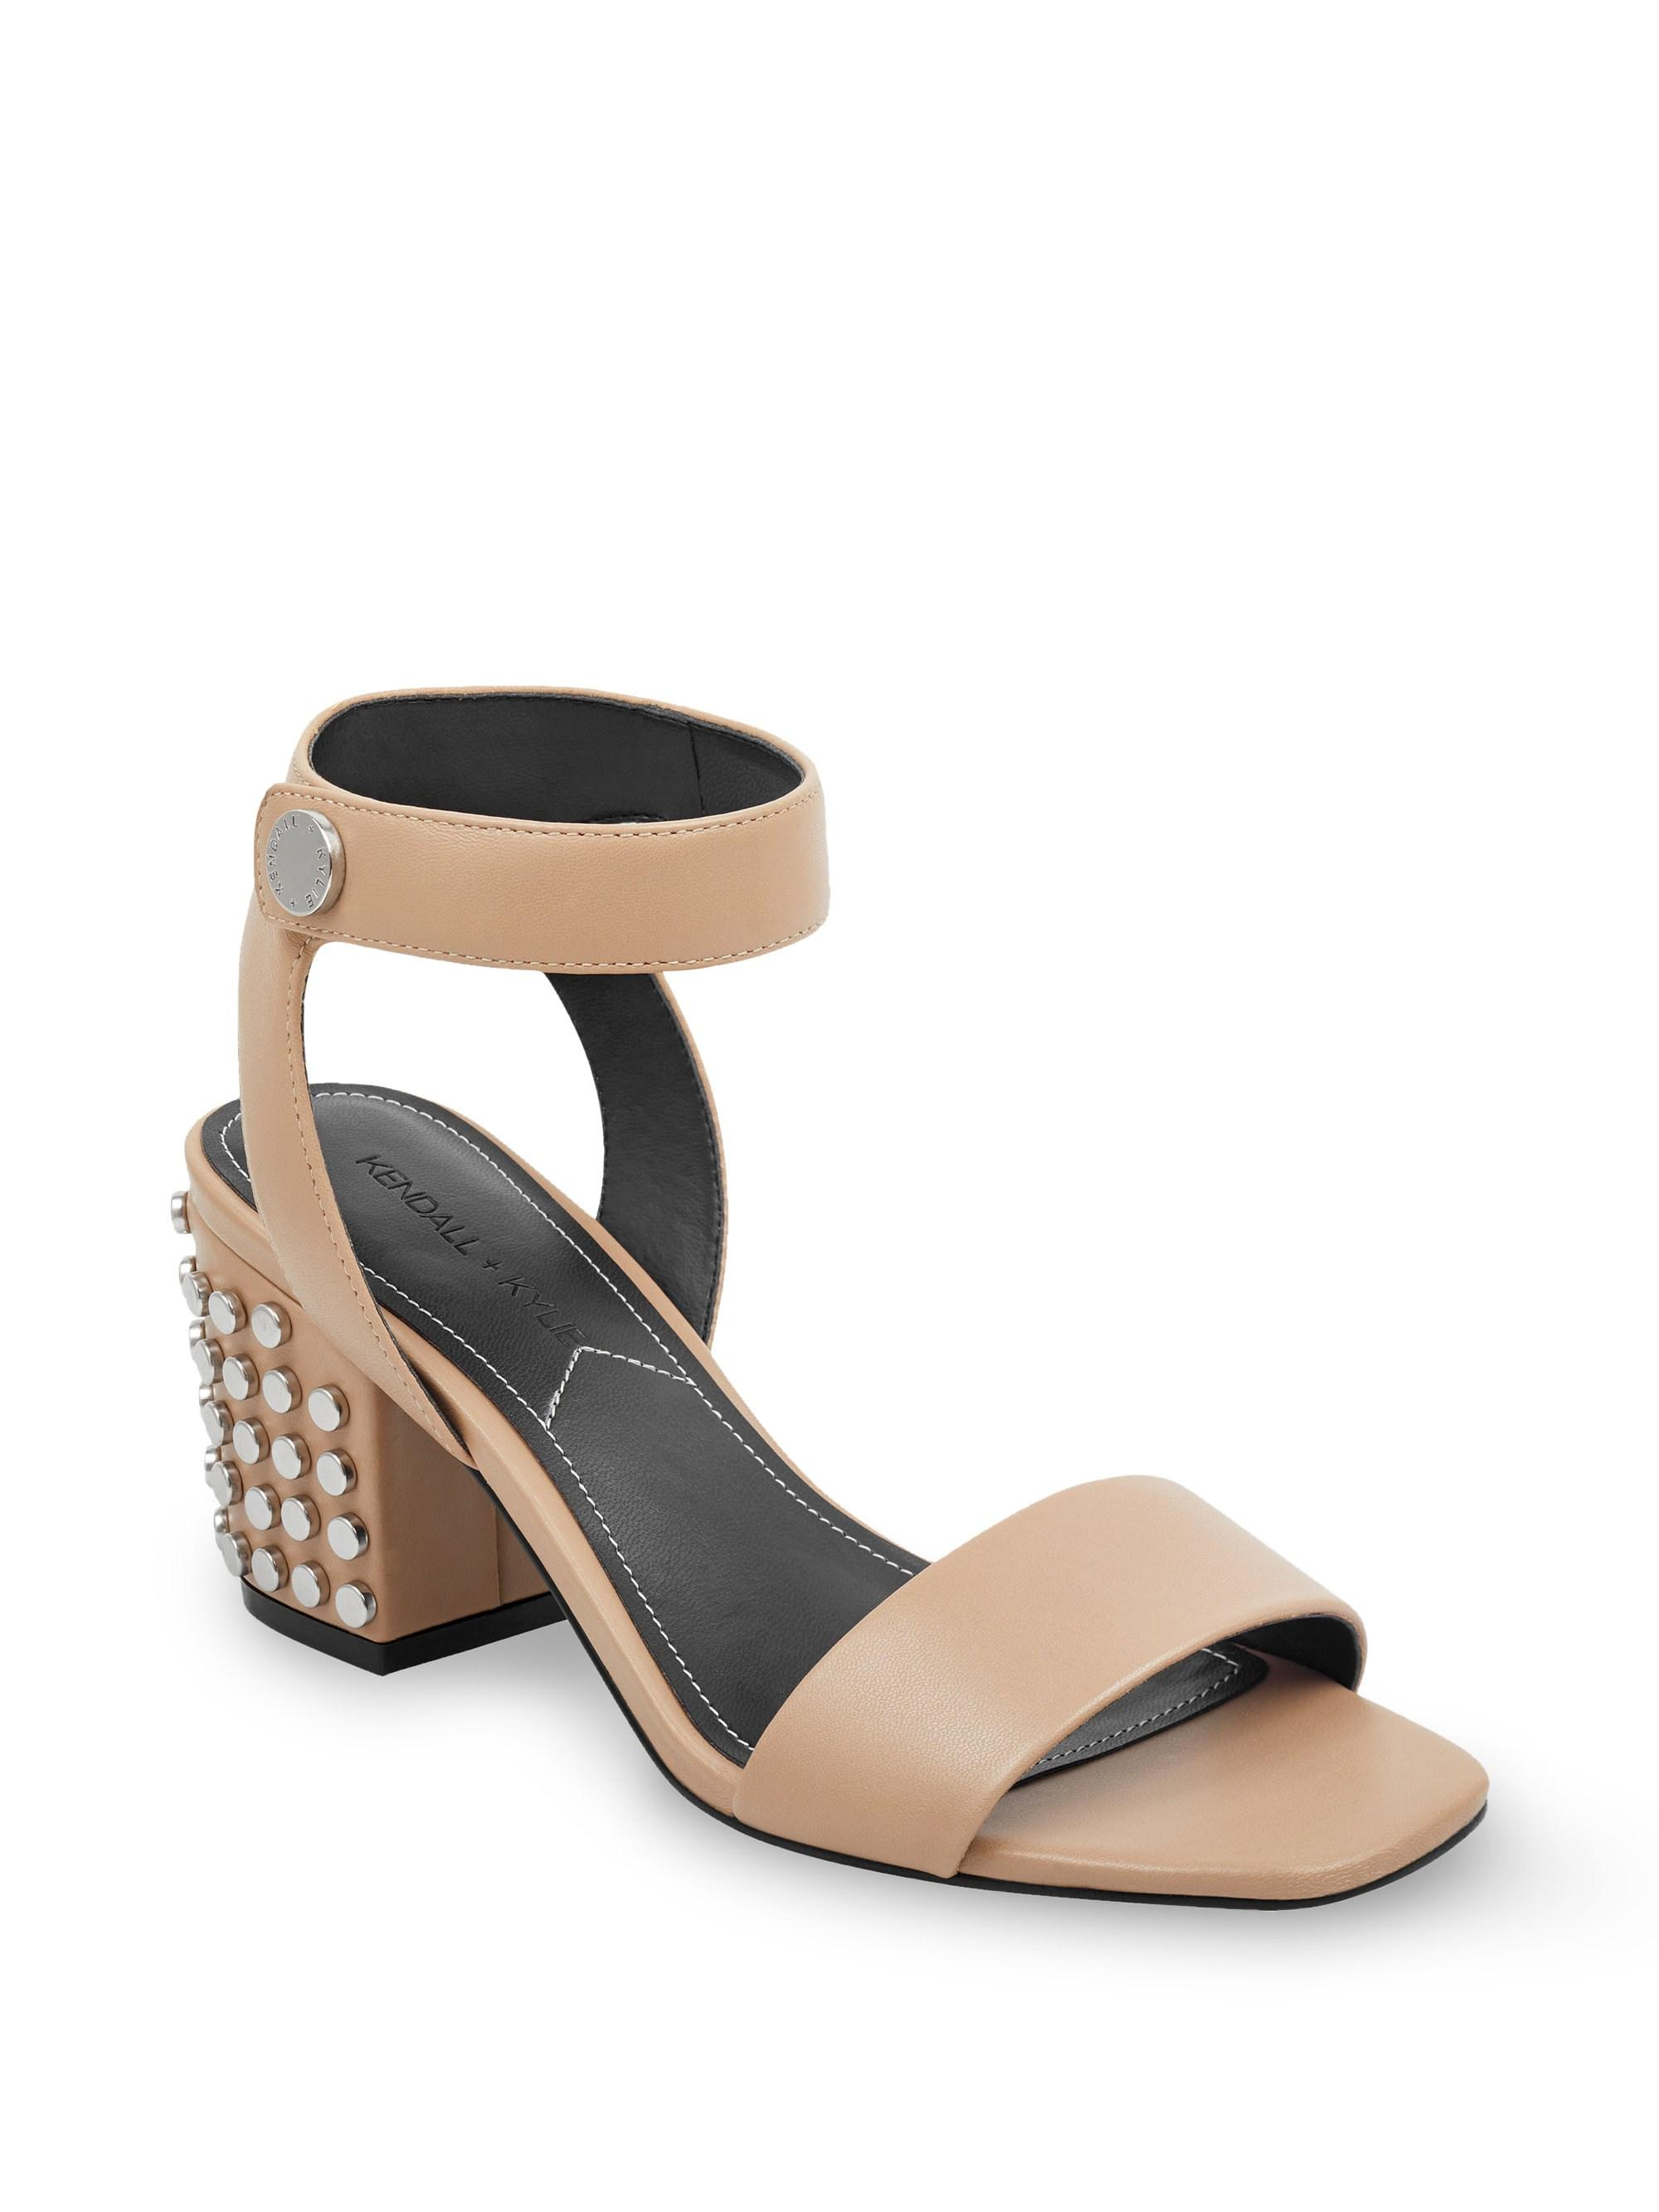 036c8120bcfc Kendall + Kylie - Natural Sophie Studded Block Heel Sandals - Lyst. View  fullscreen